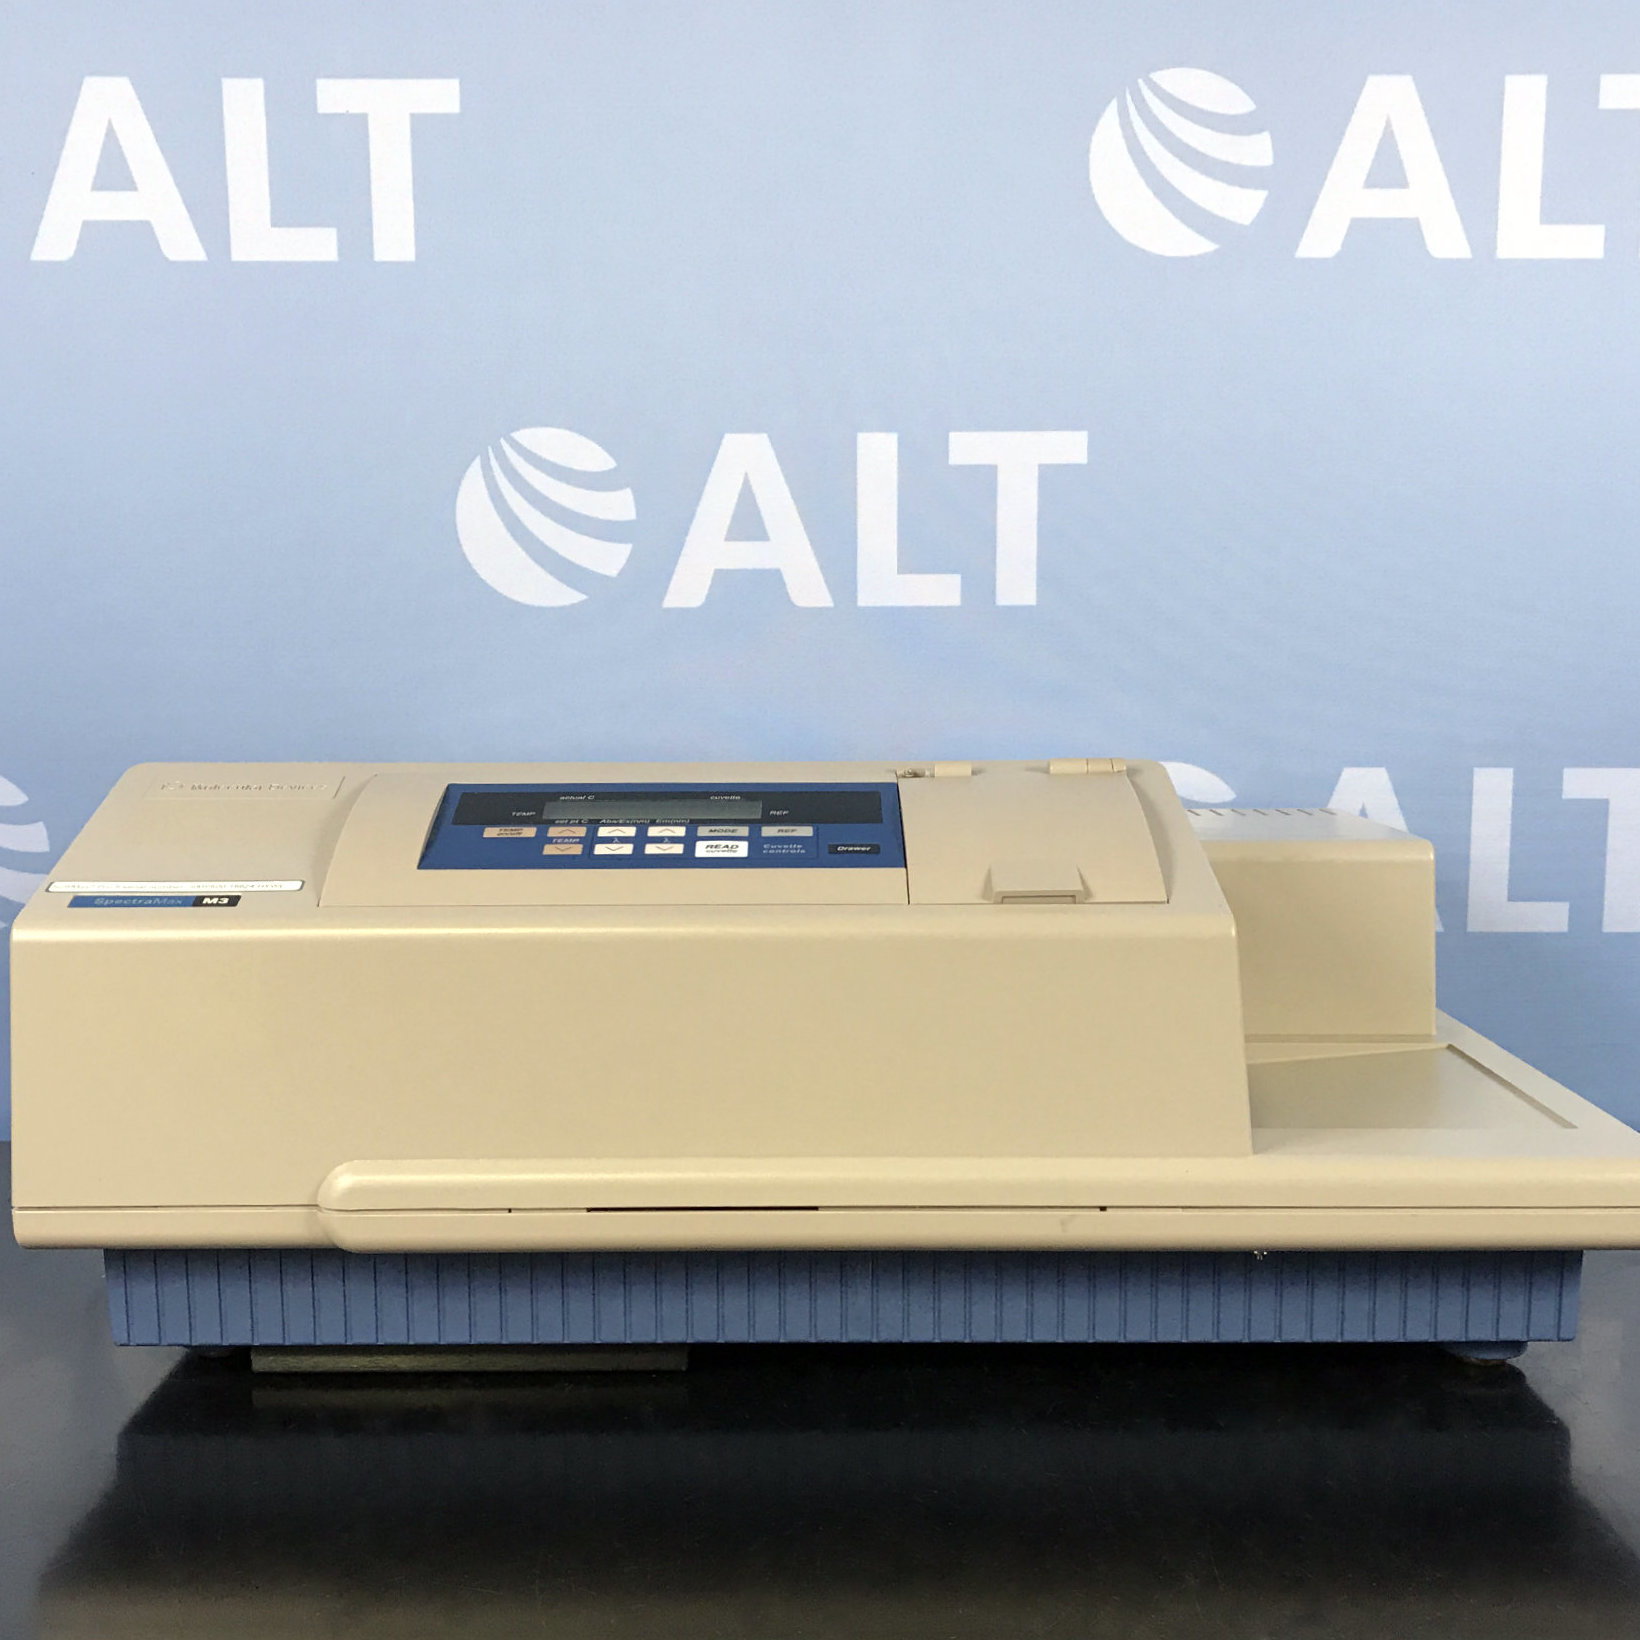 Molecular Devices SpectraMax M3 Multi-Mode Microplate Reader Image